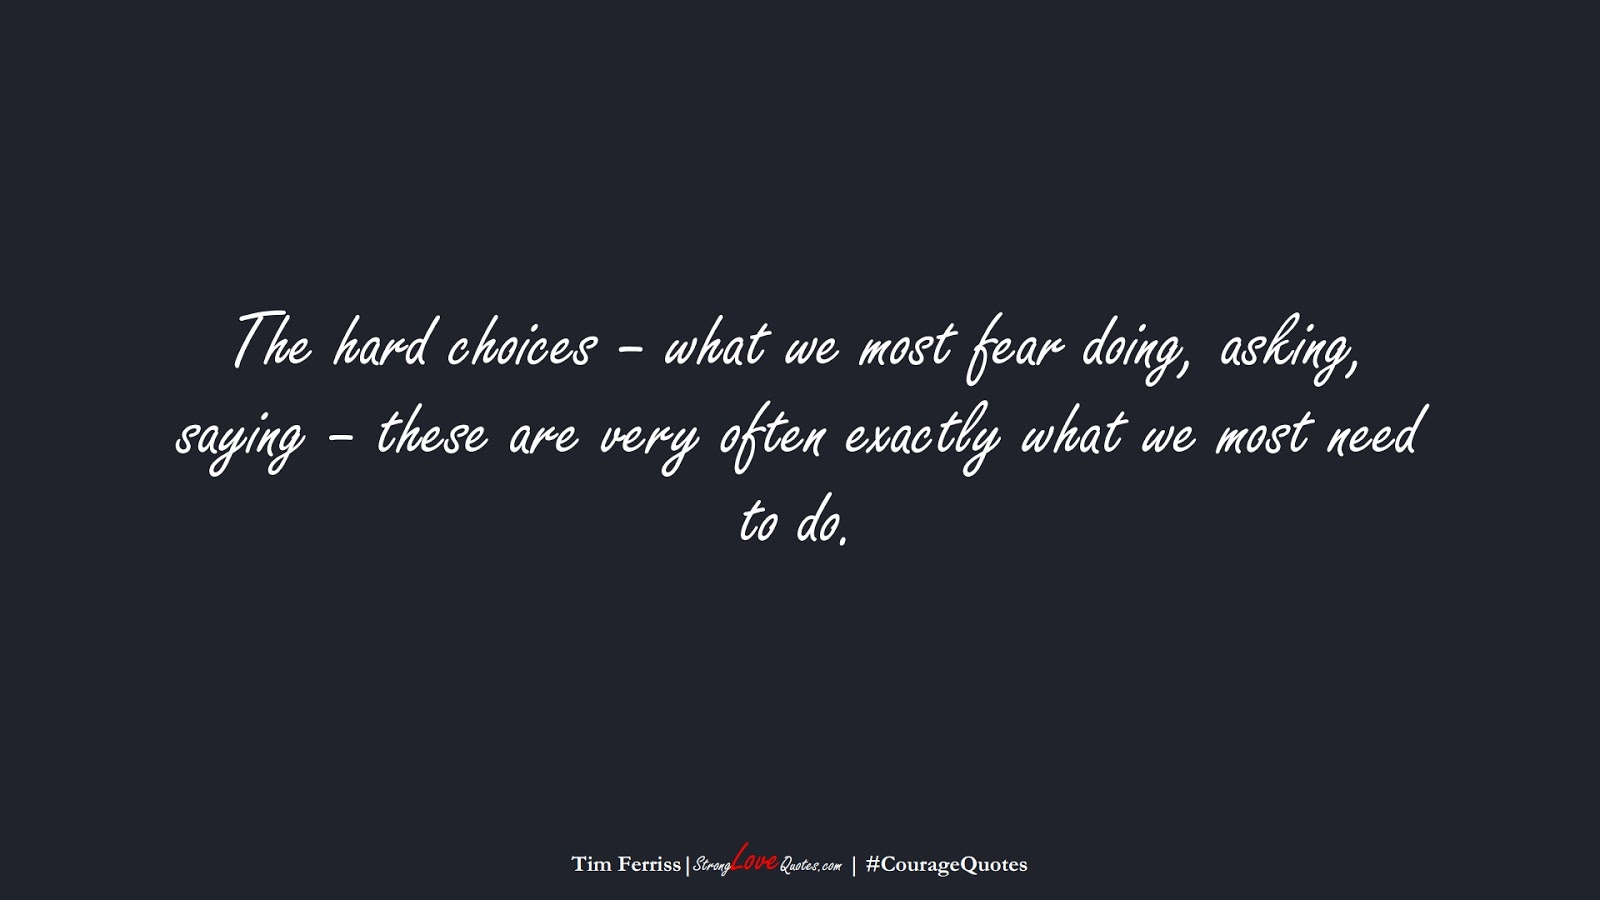 The hard choices – what we most fear doing, asking, saying – these are very often exactly what we most need to do. (Tim Ferriss);  #CourageQuotes